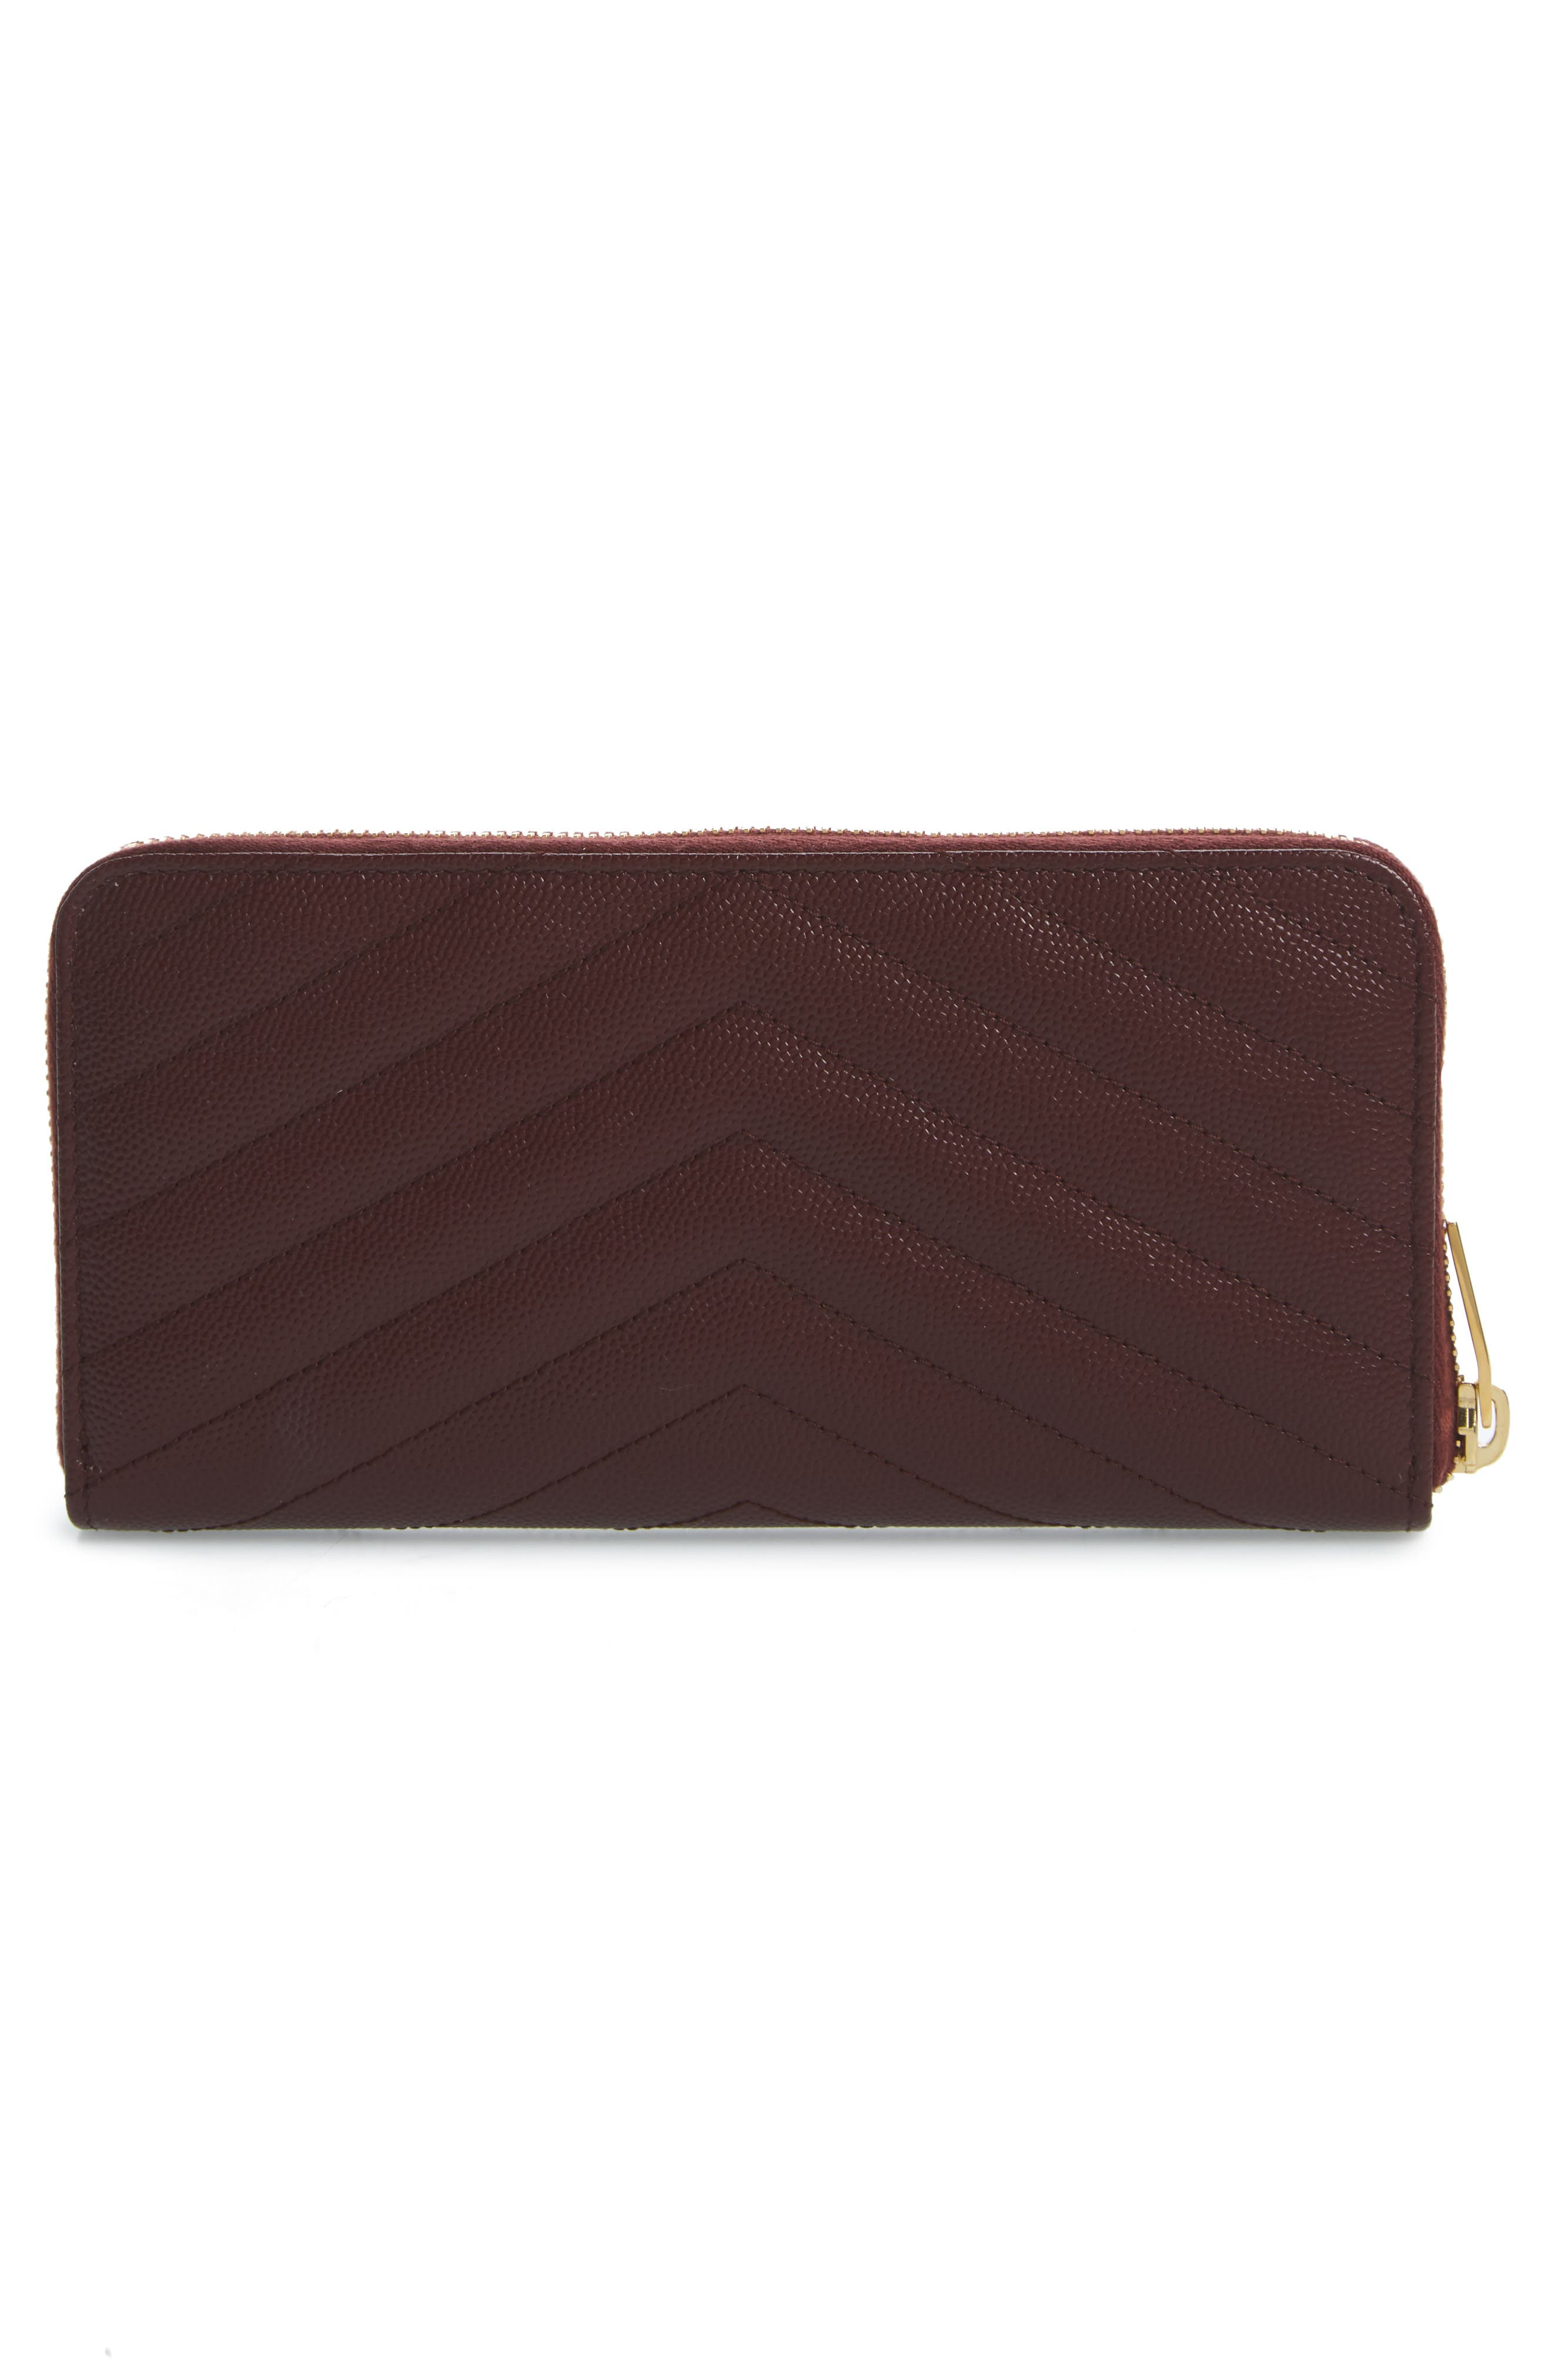 'Monogram' Quilted Leather Wallet,                             Alternate thumbnail 3, color,                             ROUGE LEGION